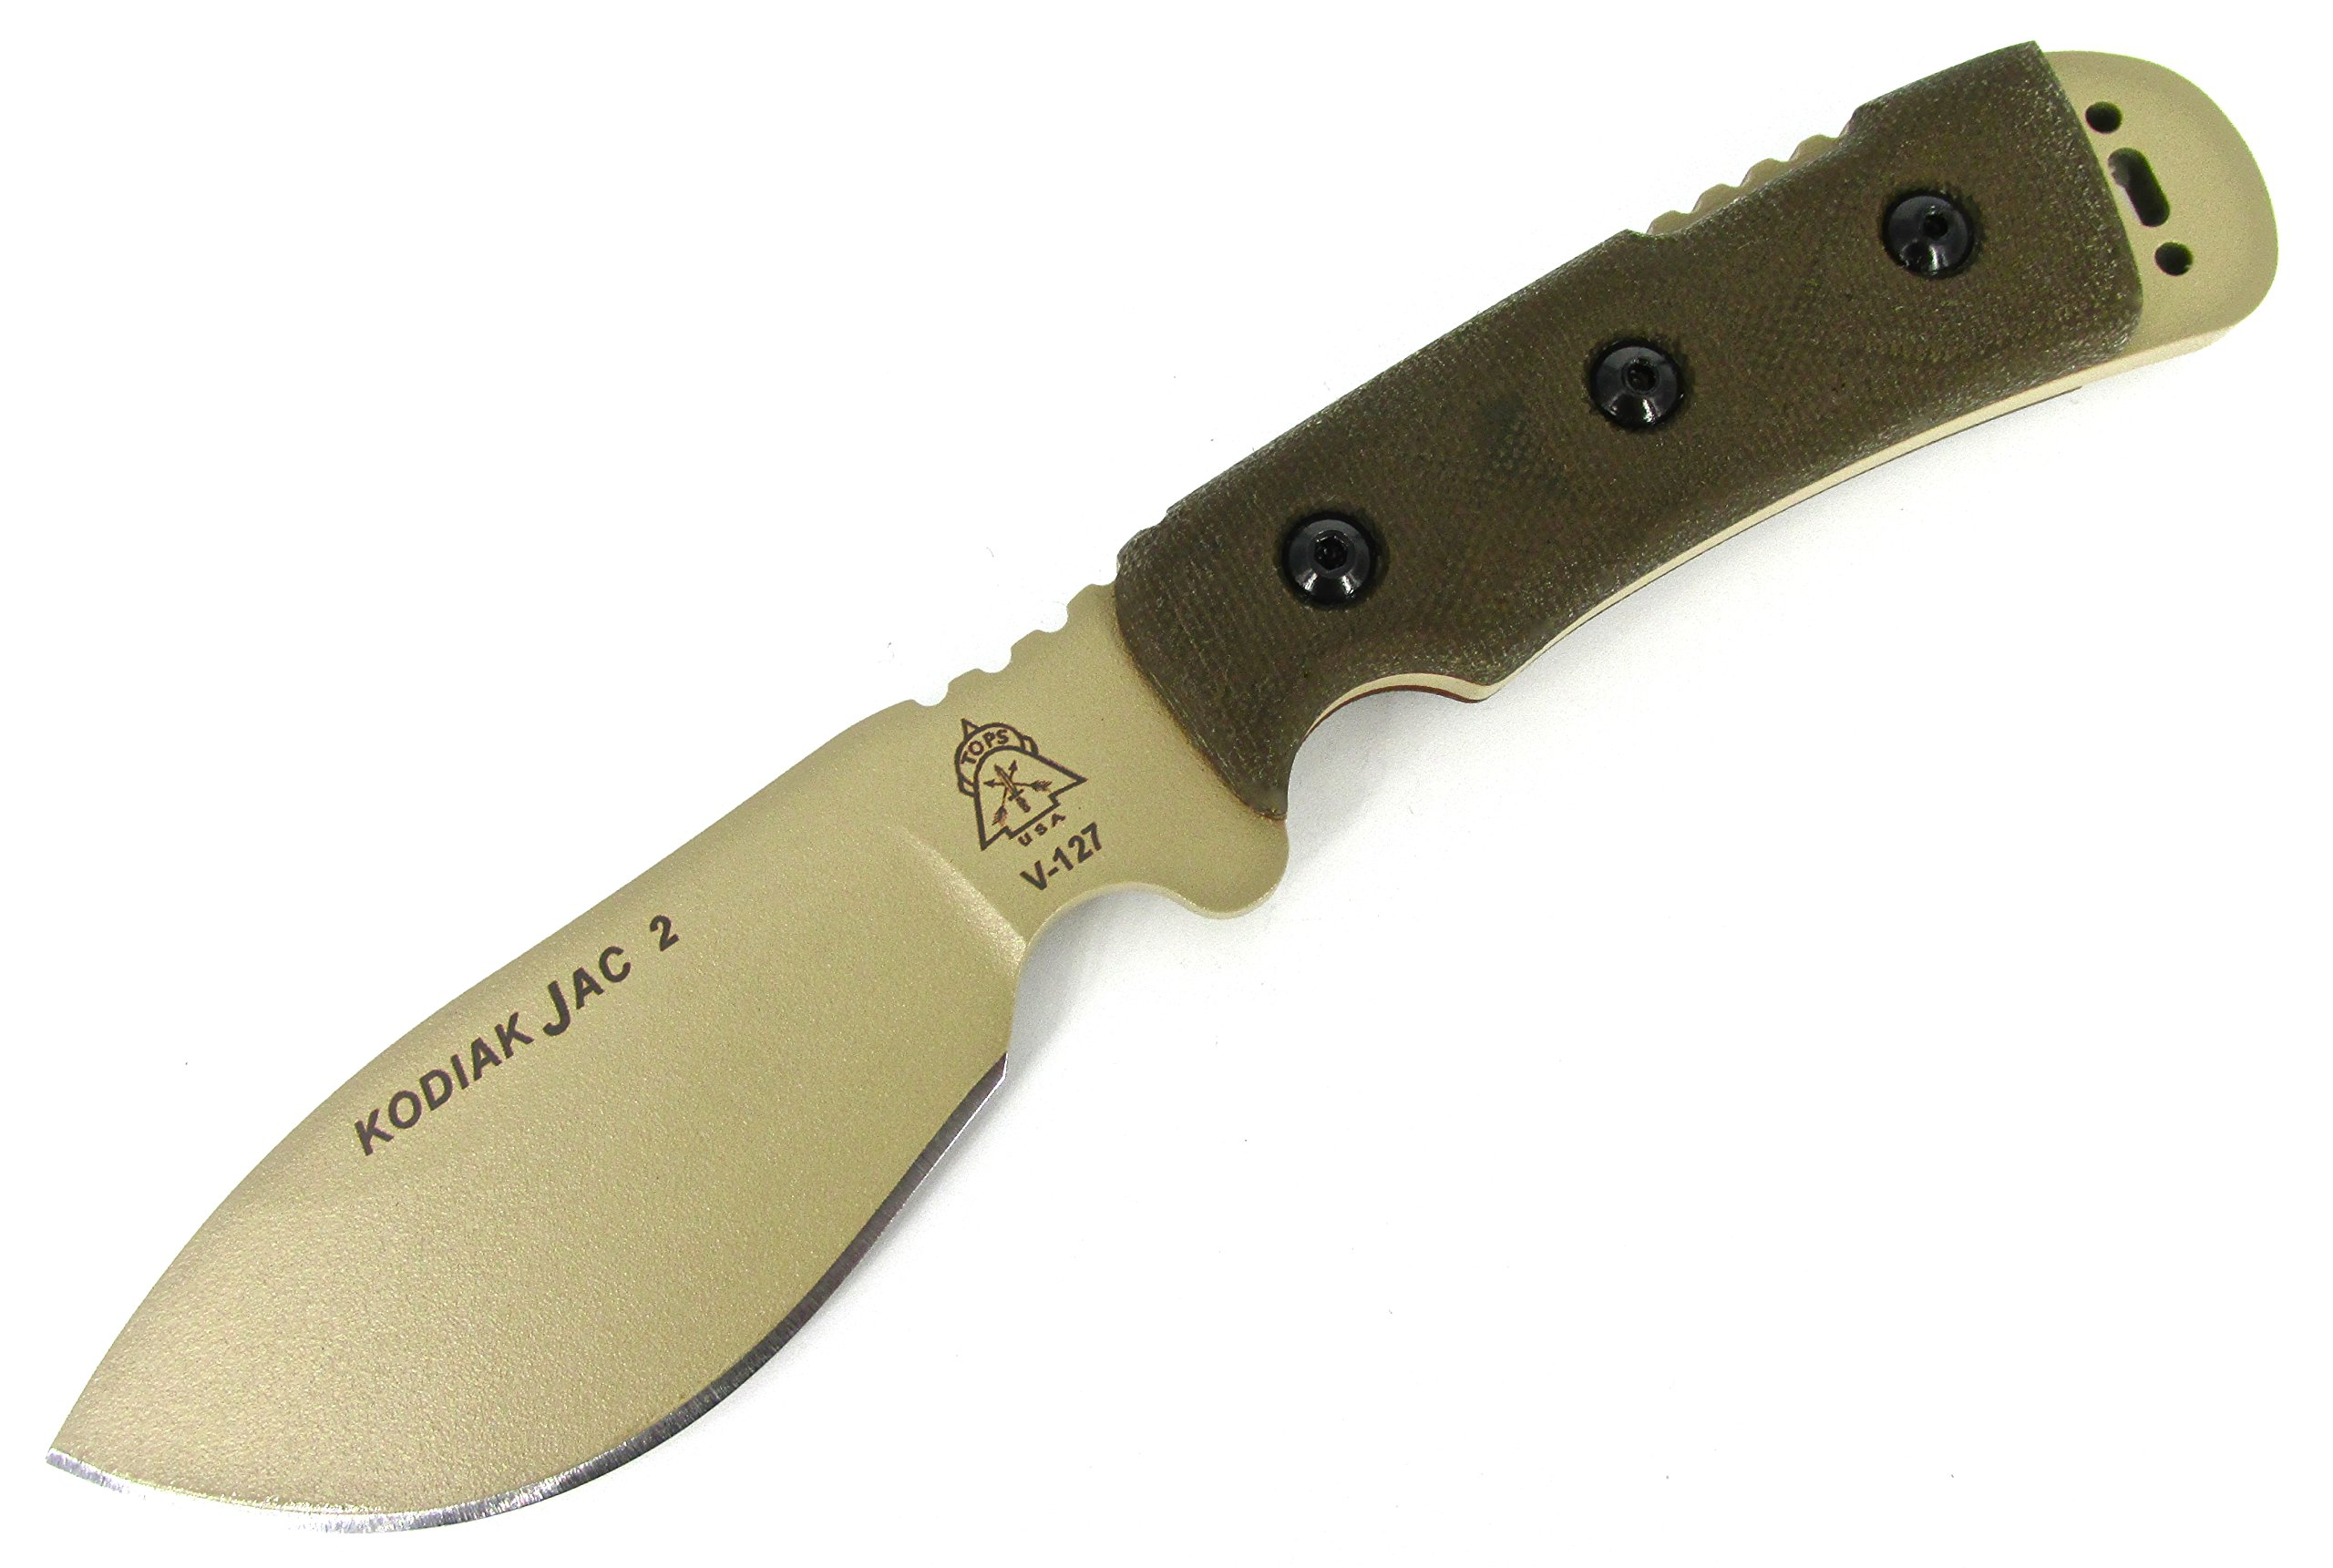 TOPS Knives Kodiak Jac 2 Fixed Blade Knife Coyote Tan Blade W/Green Micarta Handle KJAC-02